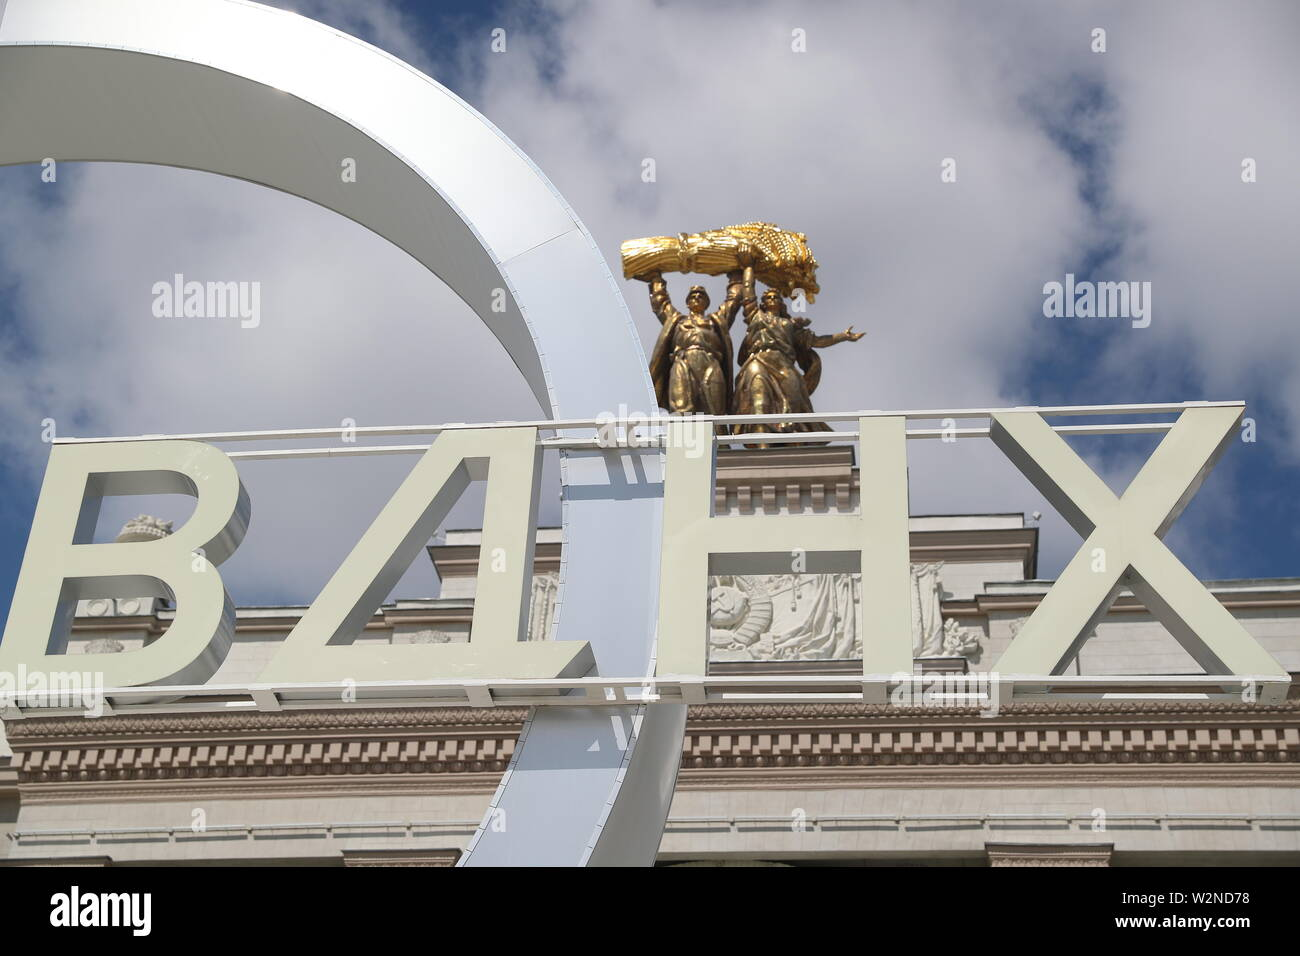 Moscow, Russia. 10th July, 2019. MOSCOW, RUSSIA - JULY 10, 2019: Statues atop the main entrance to the VDNKh exhibition centre and park. Alexander Shcherbak/TASS Credit: ITAR-TASS News Agency/Alamy Live News Stock Photo